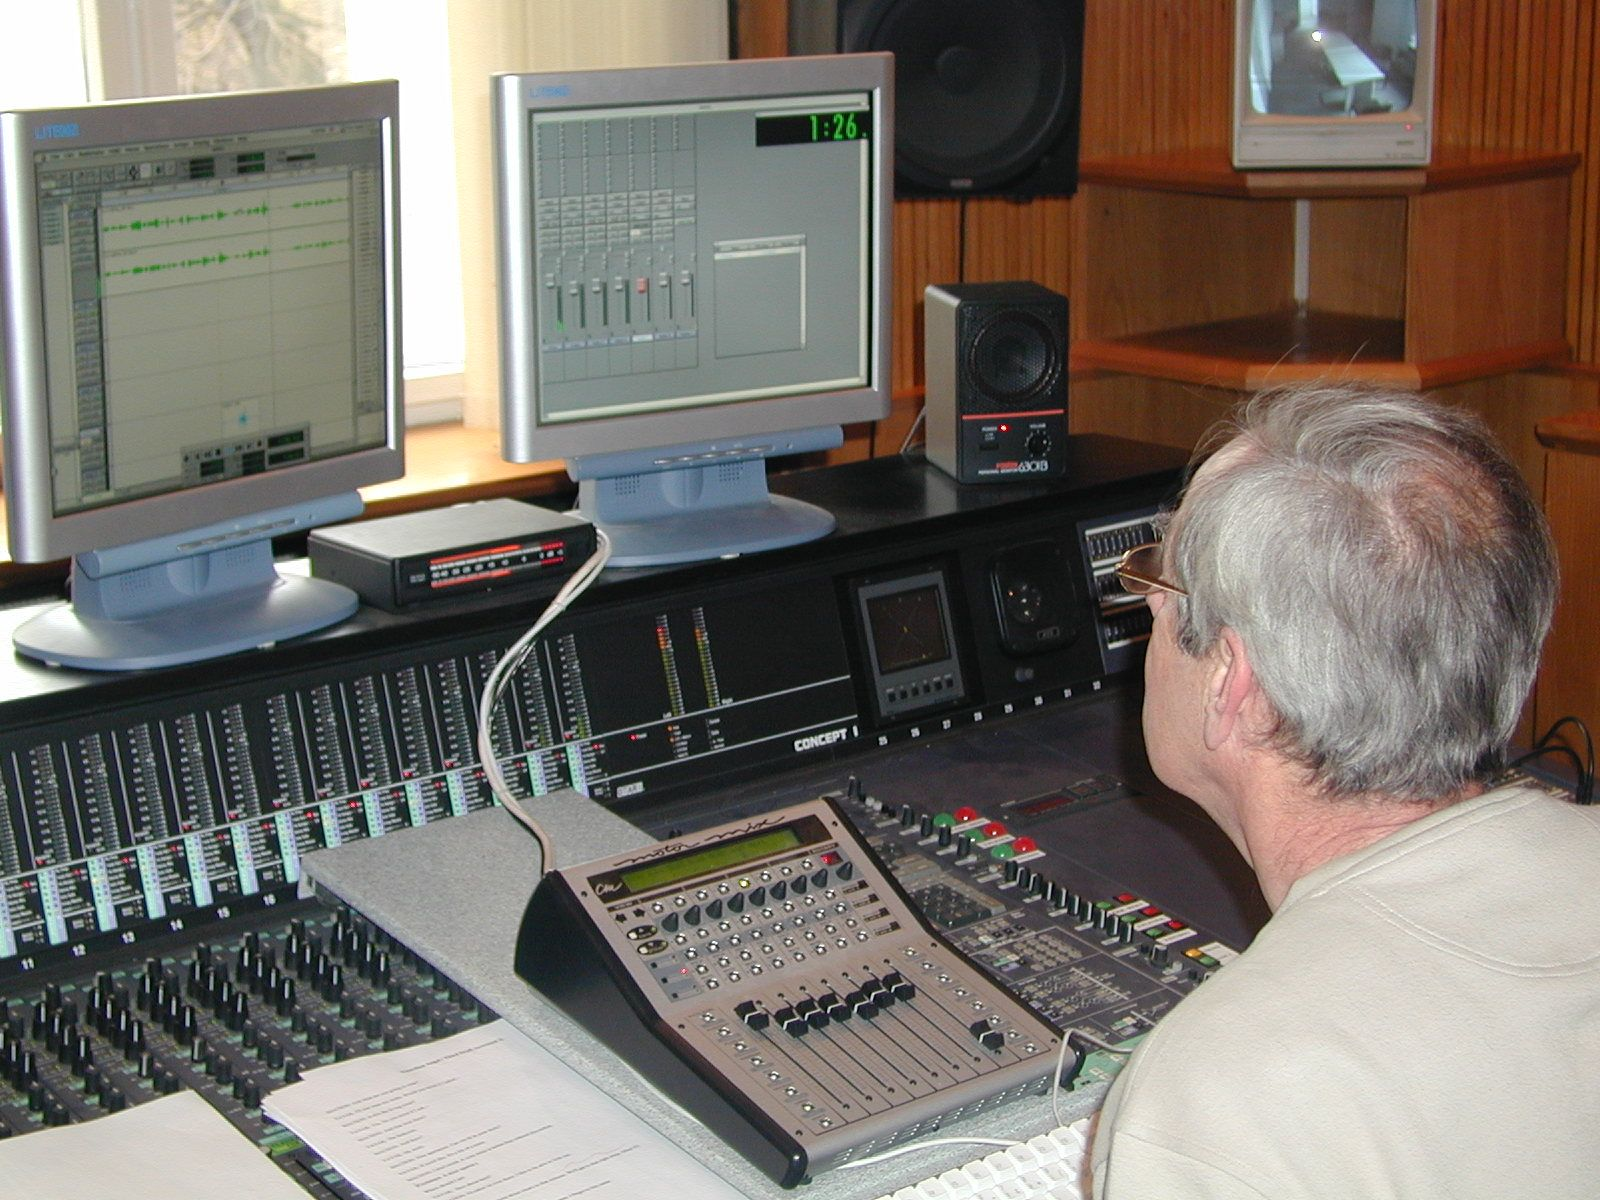 A journey into sound - a behind-the-scenes look into how radio sound